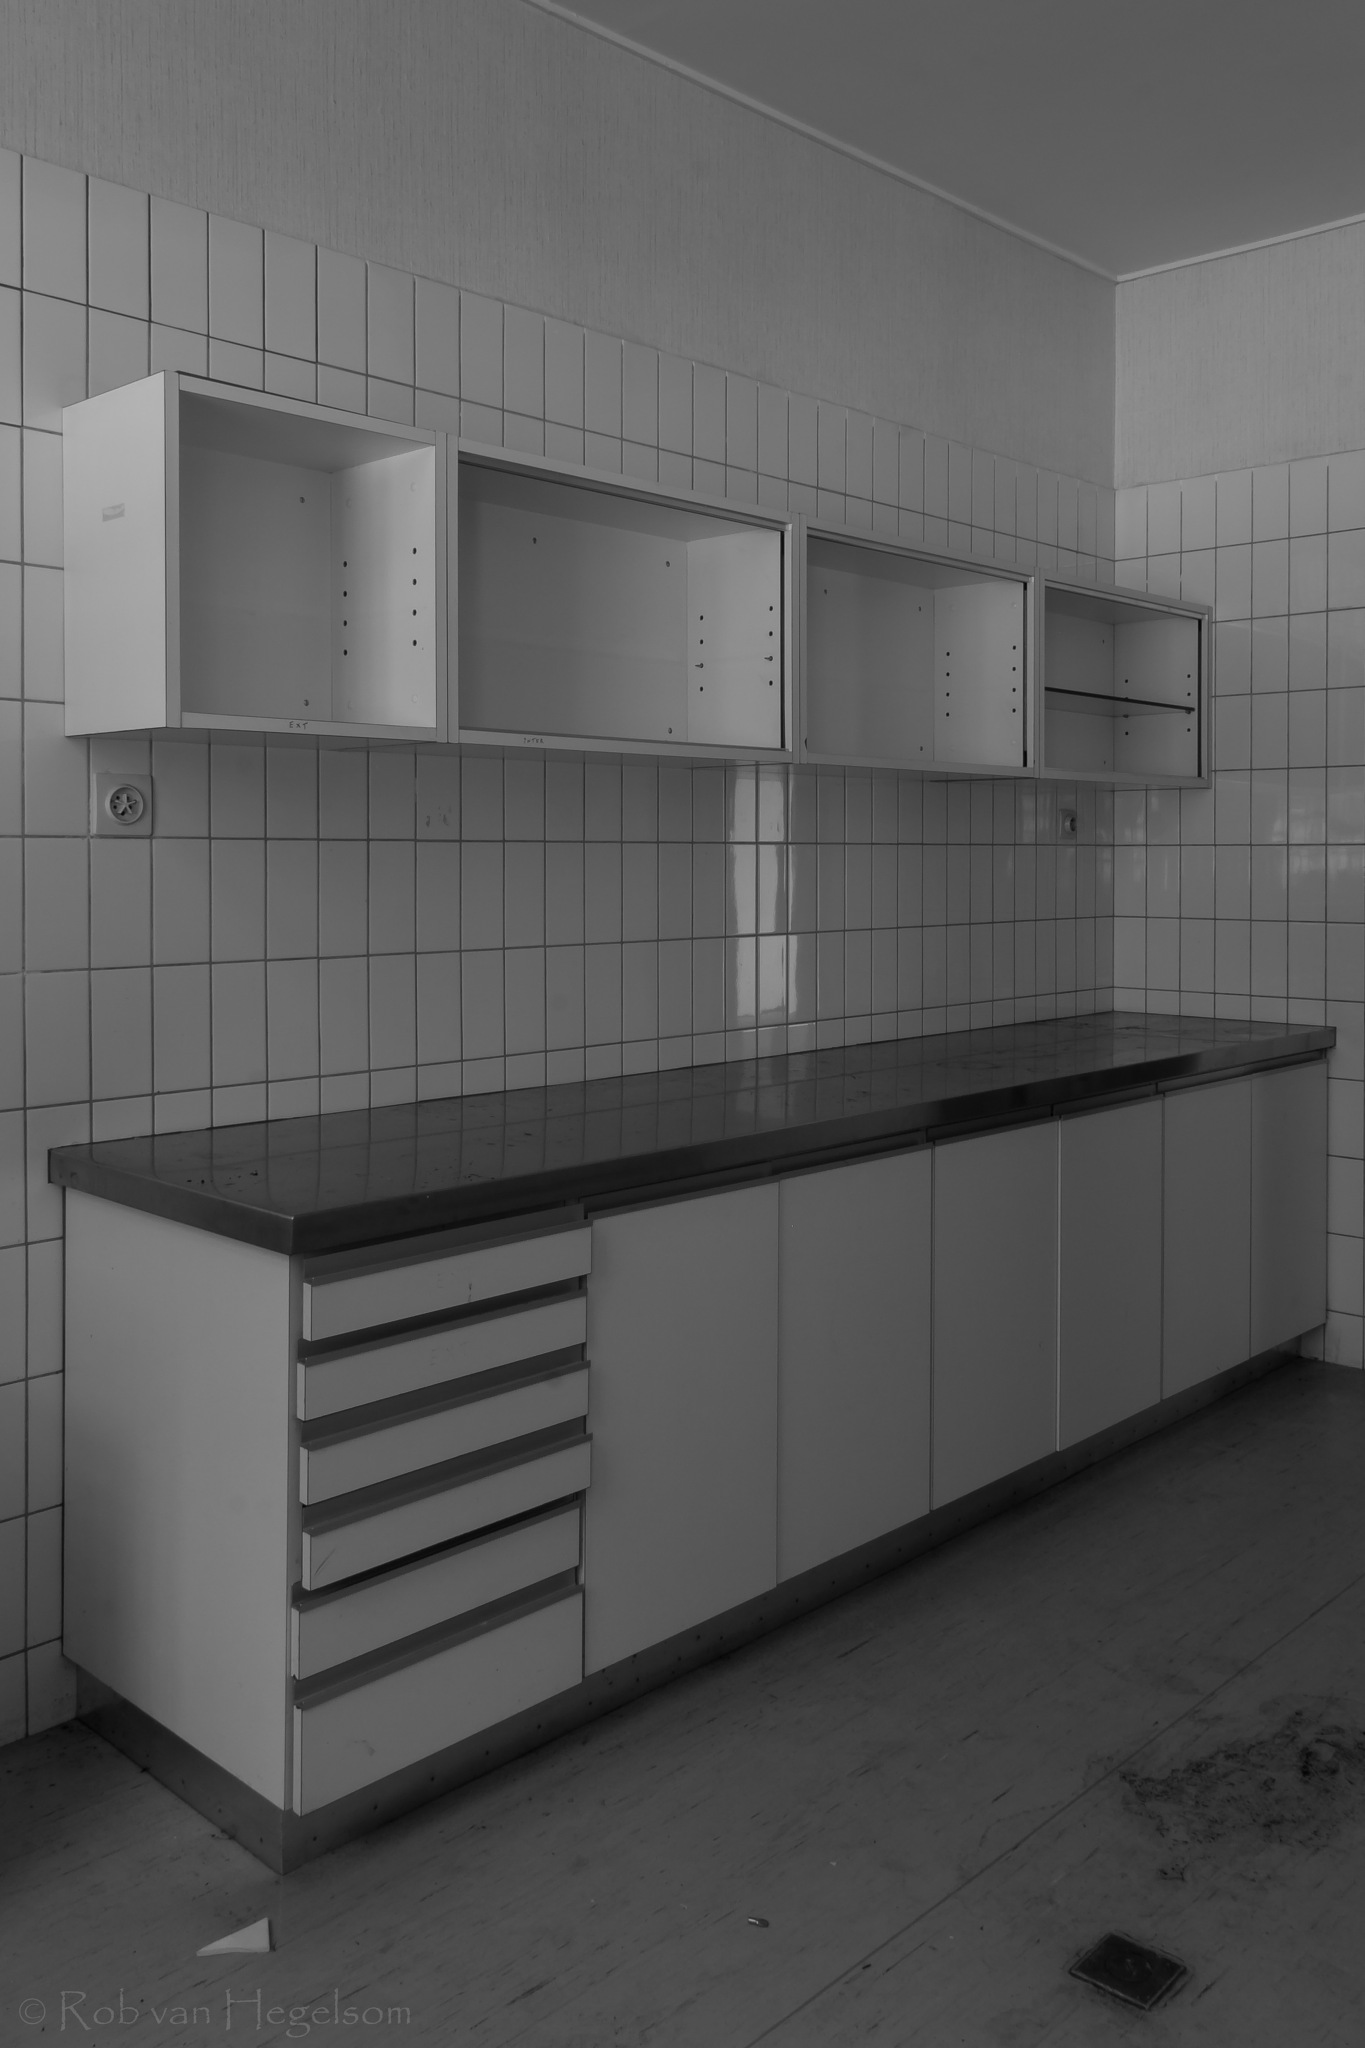 The cupboards by rvanhegelsom